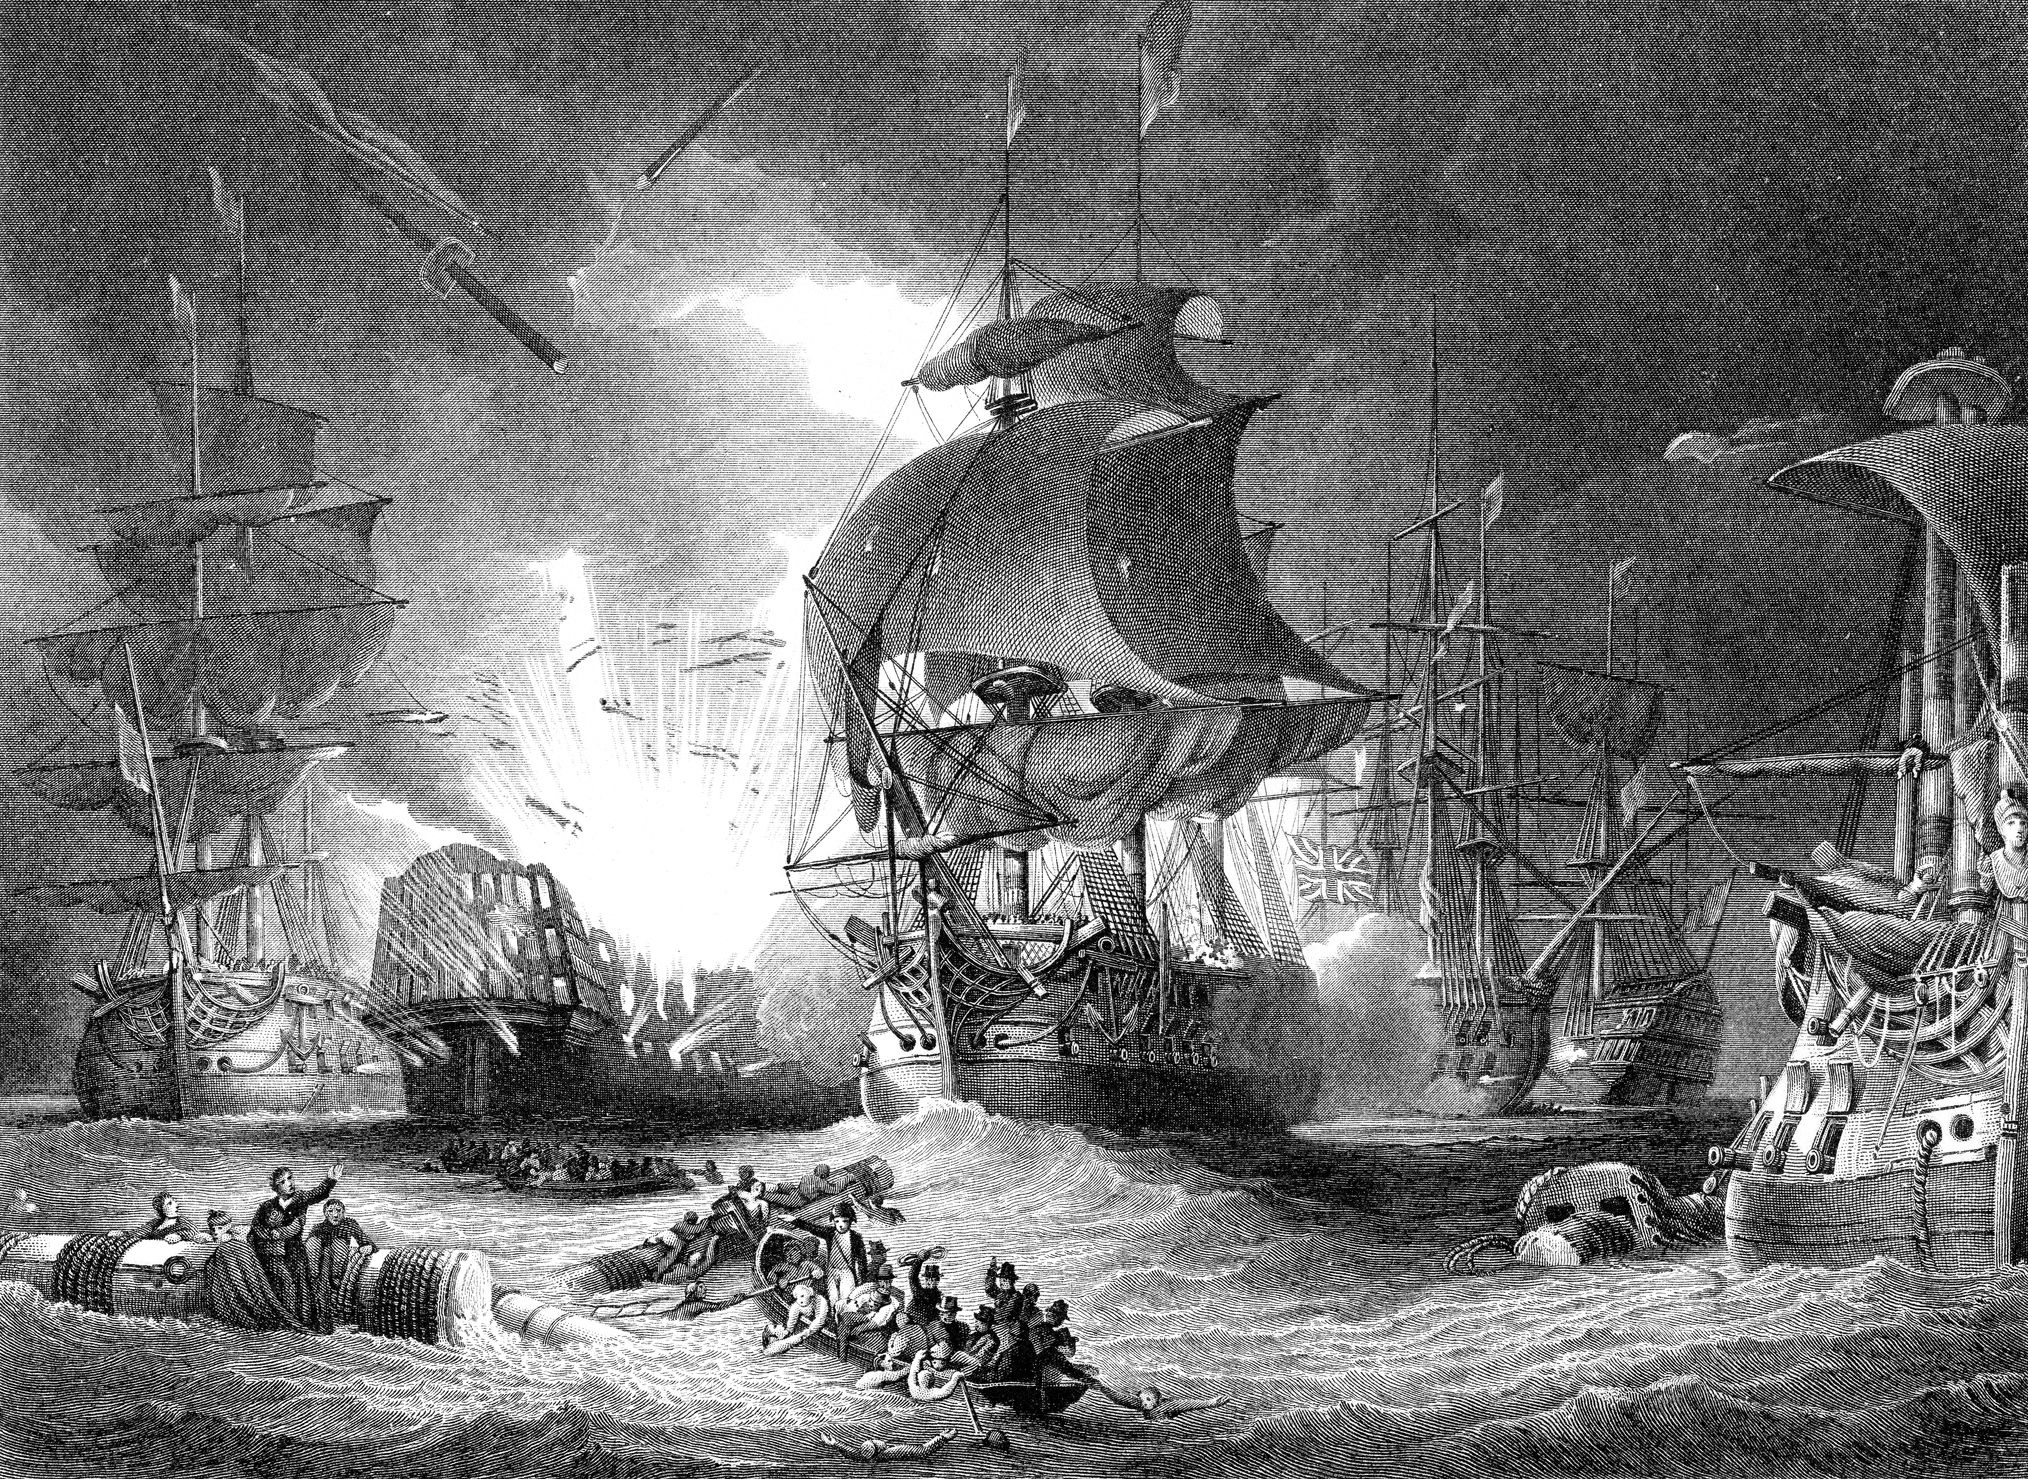 vintage engraving of the Battle of the Nile